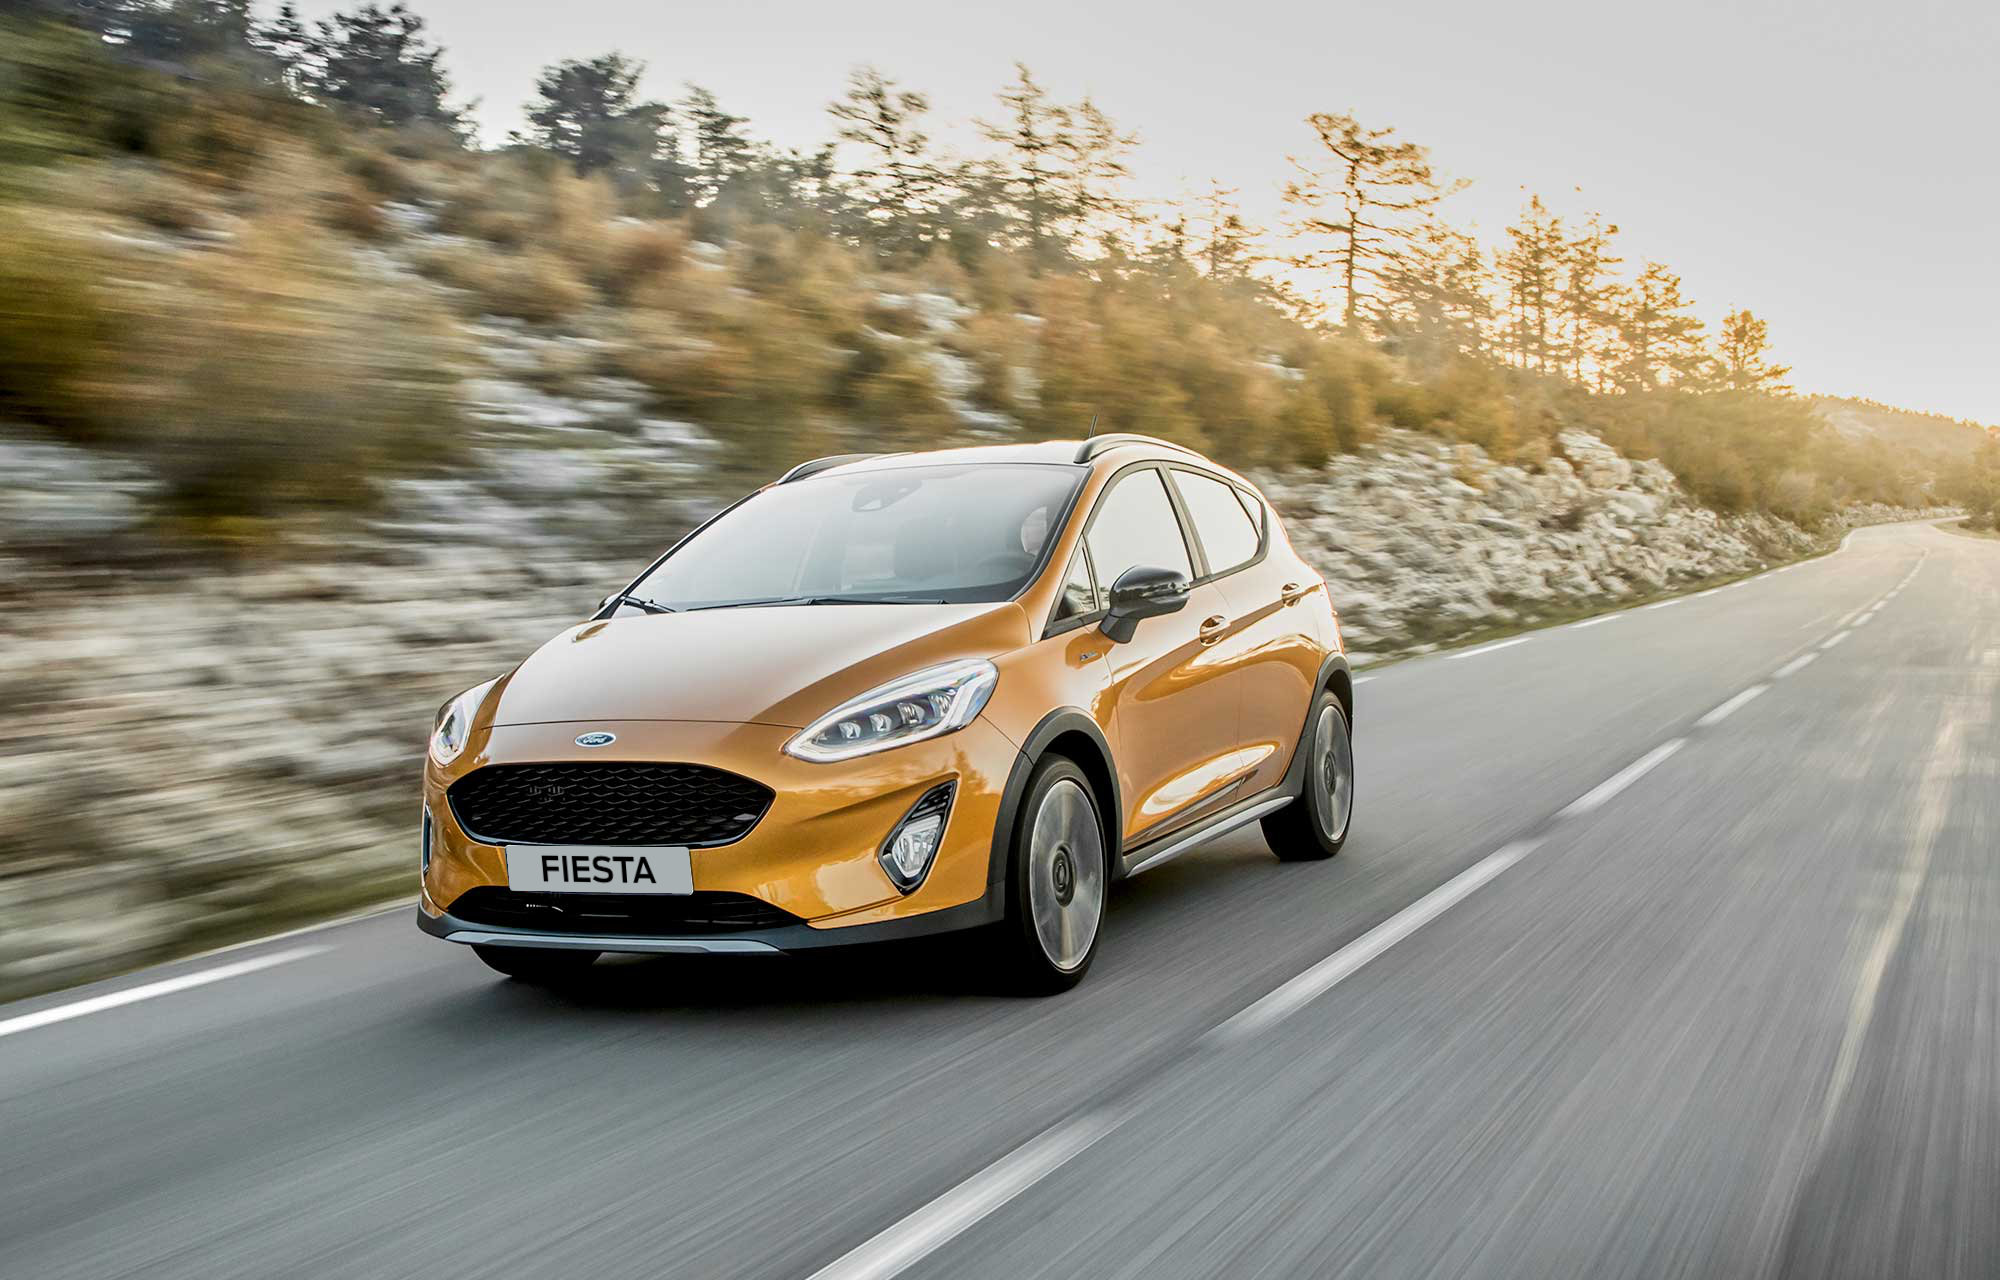 Ford Fiesta at Porter Ford, Sligo